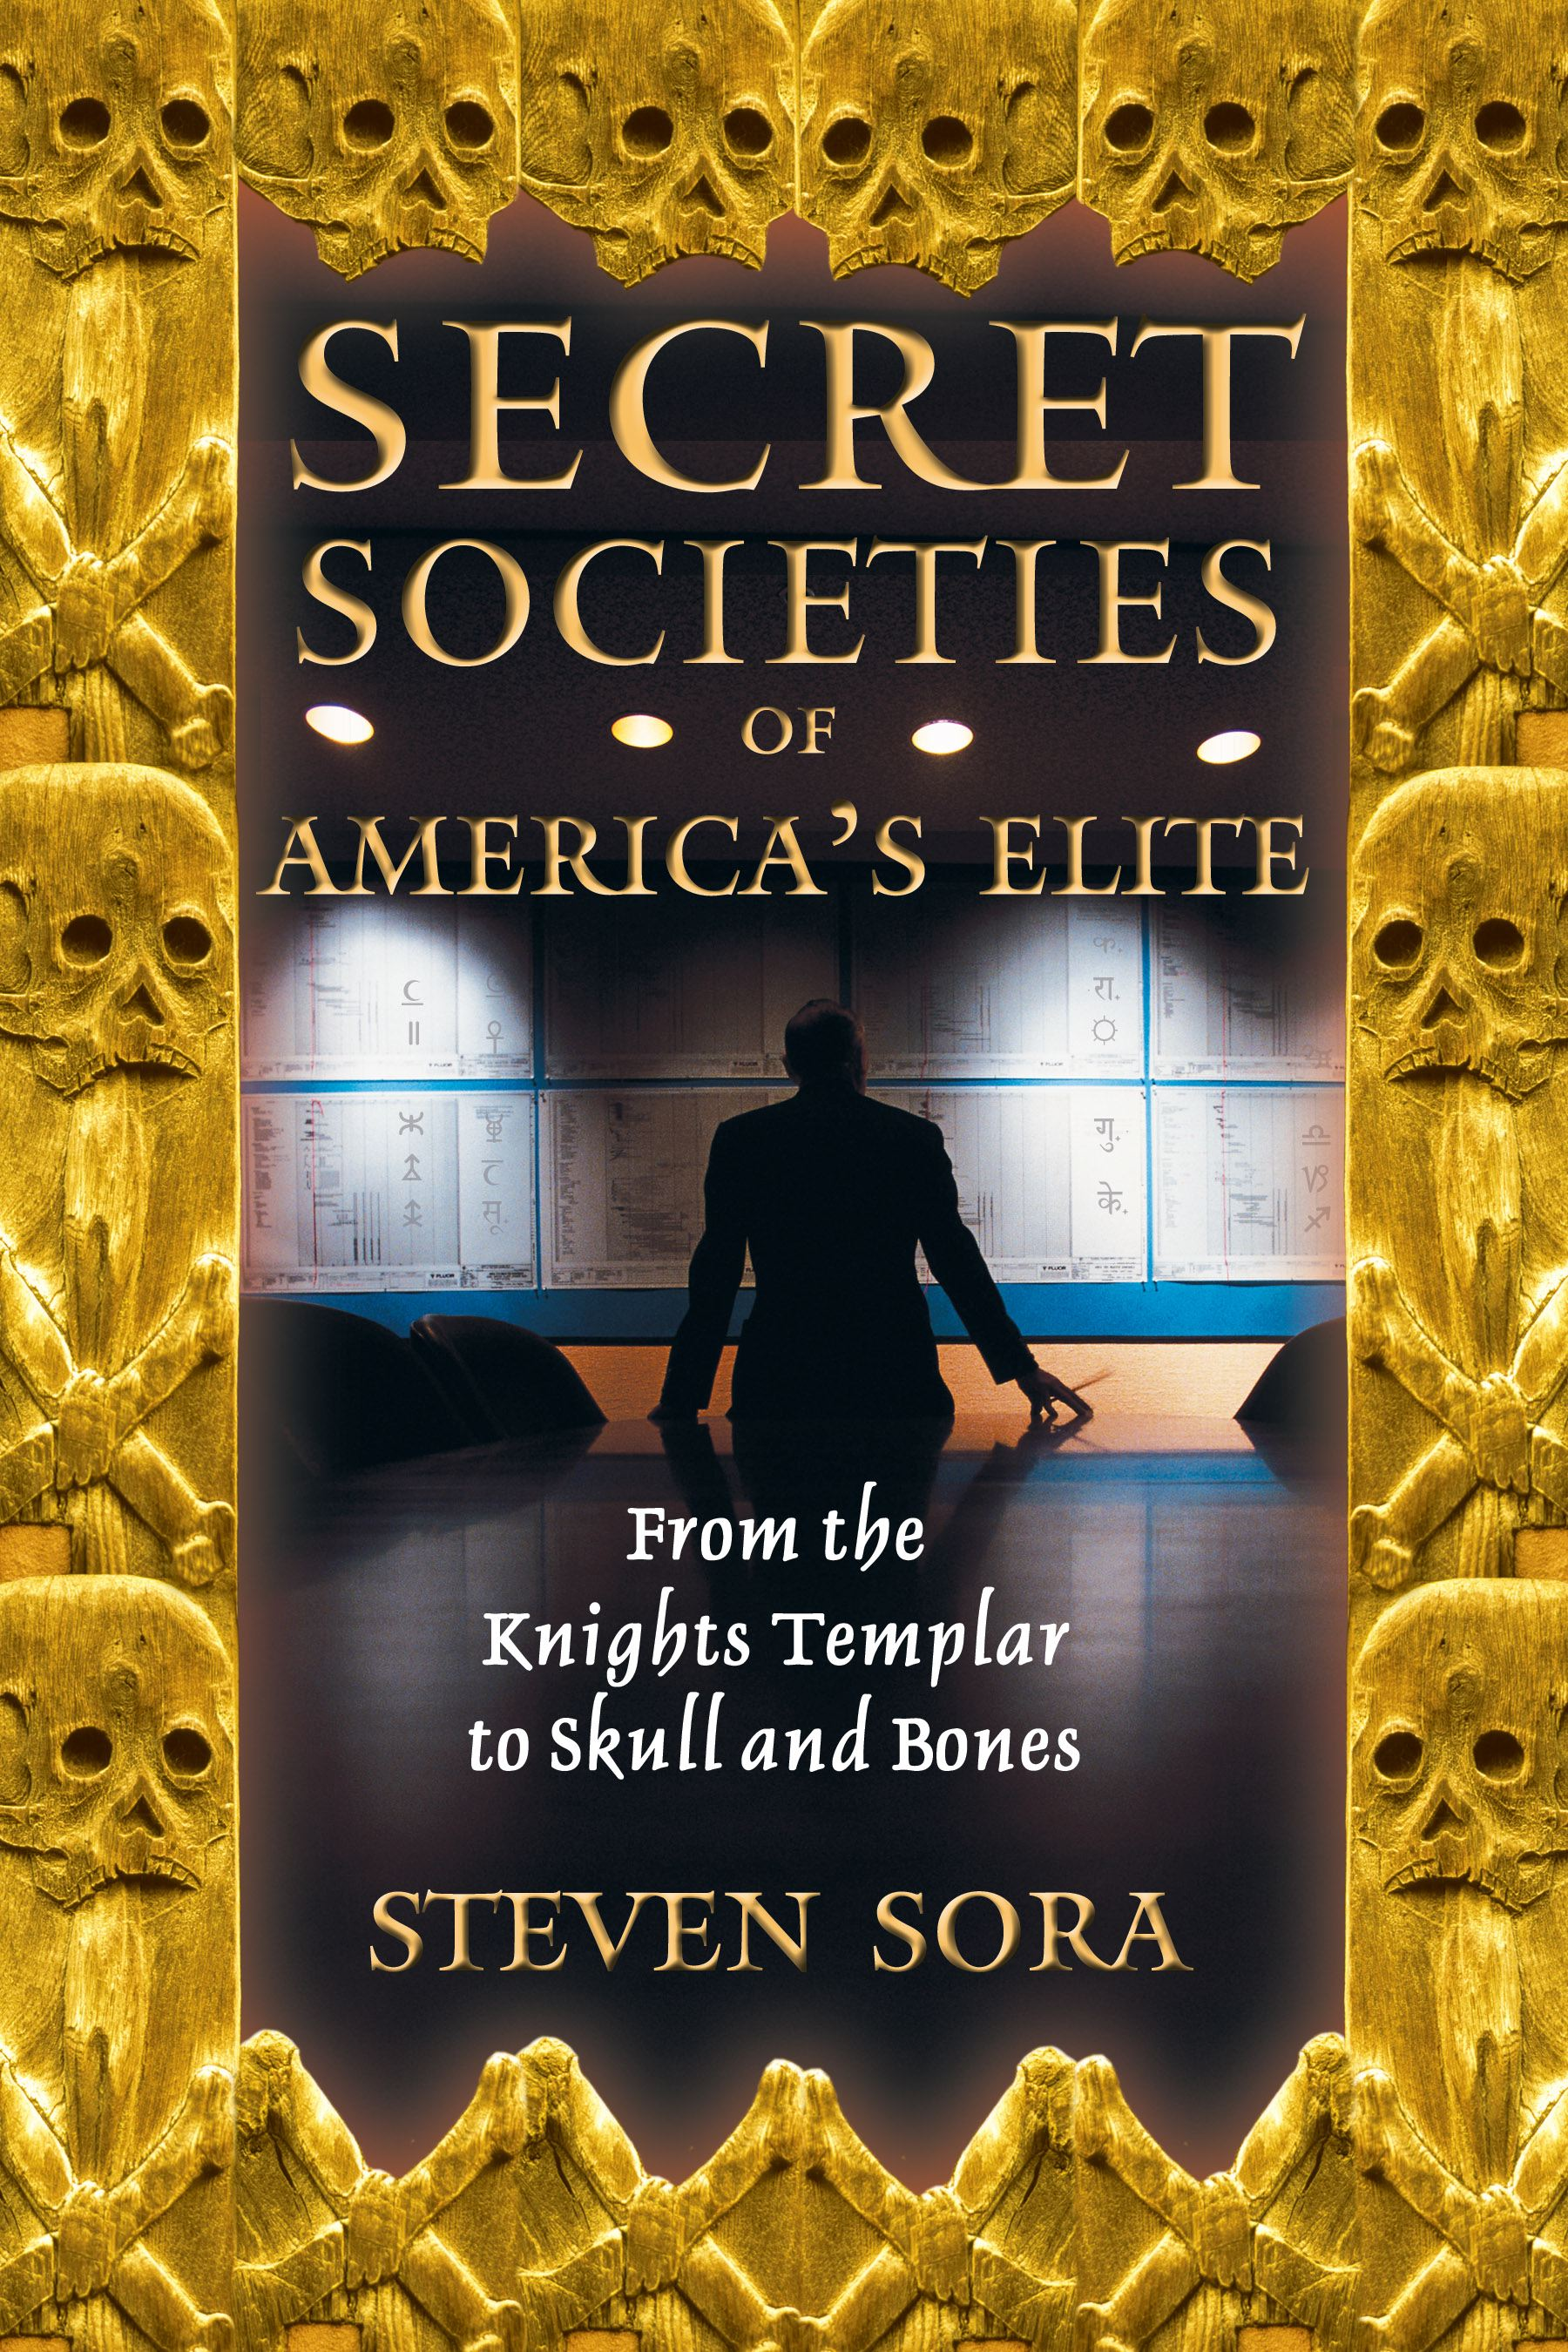 Secret-societies-of-americas-elite-9780892819591_hr